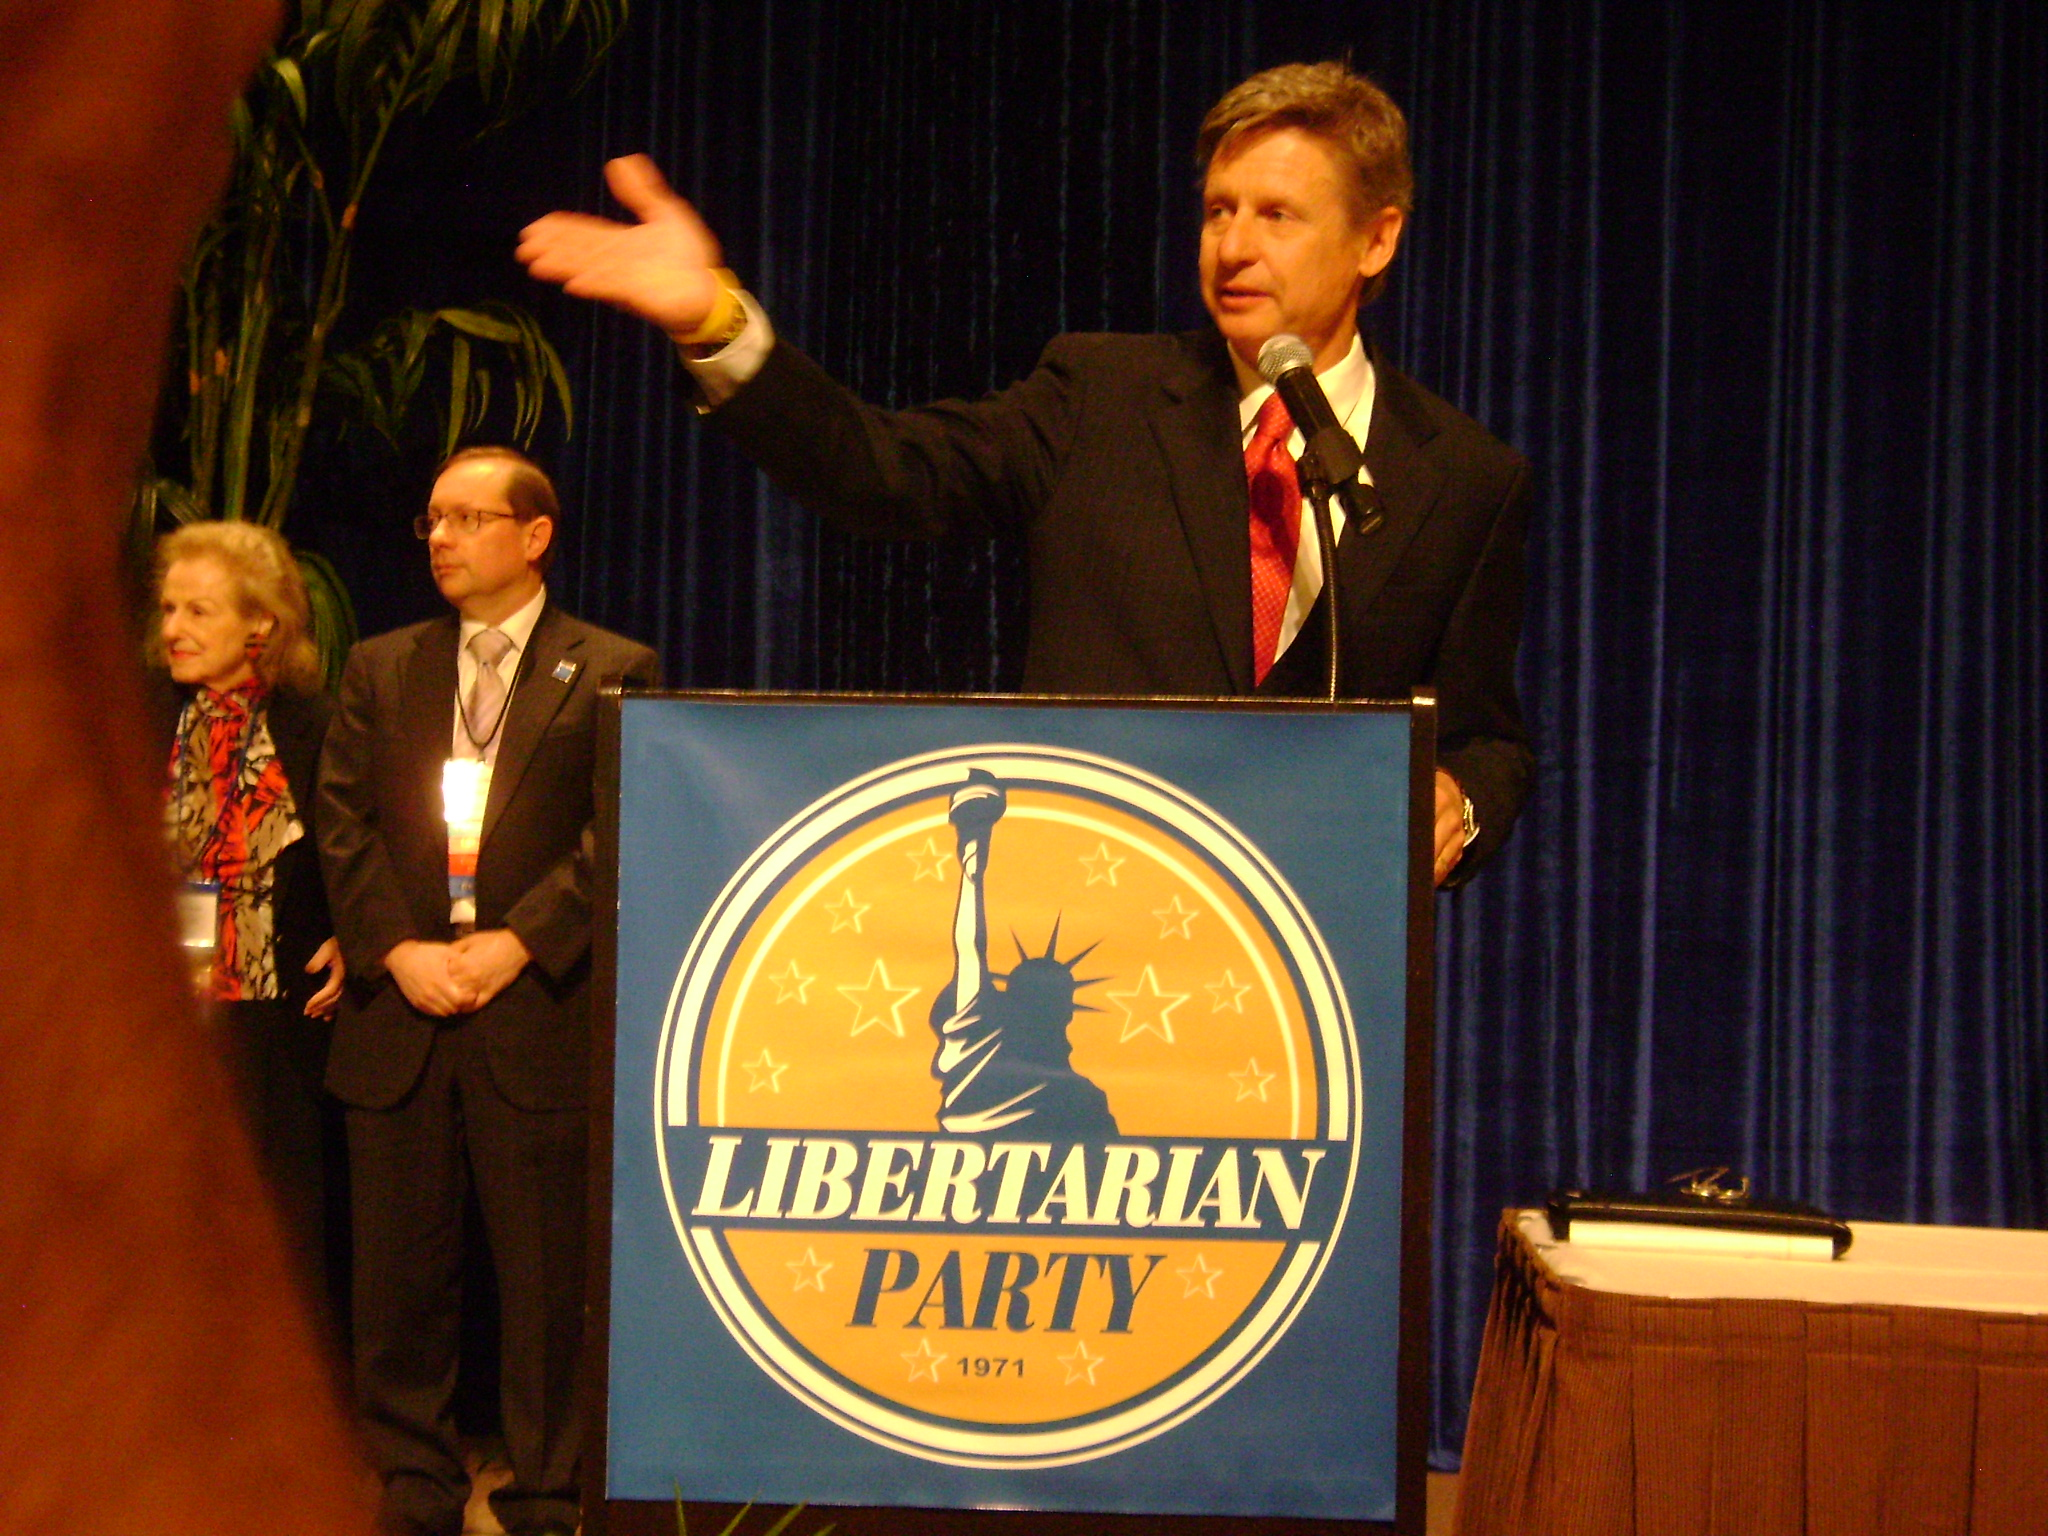 Johnson Wins Libertarian Presidential Nomination on First Ballot